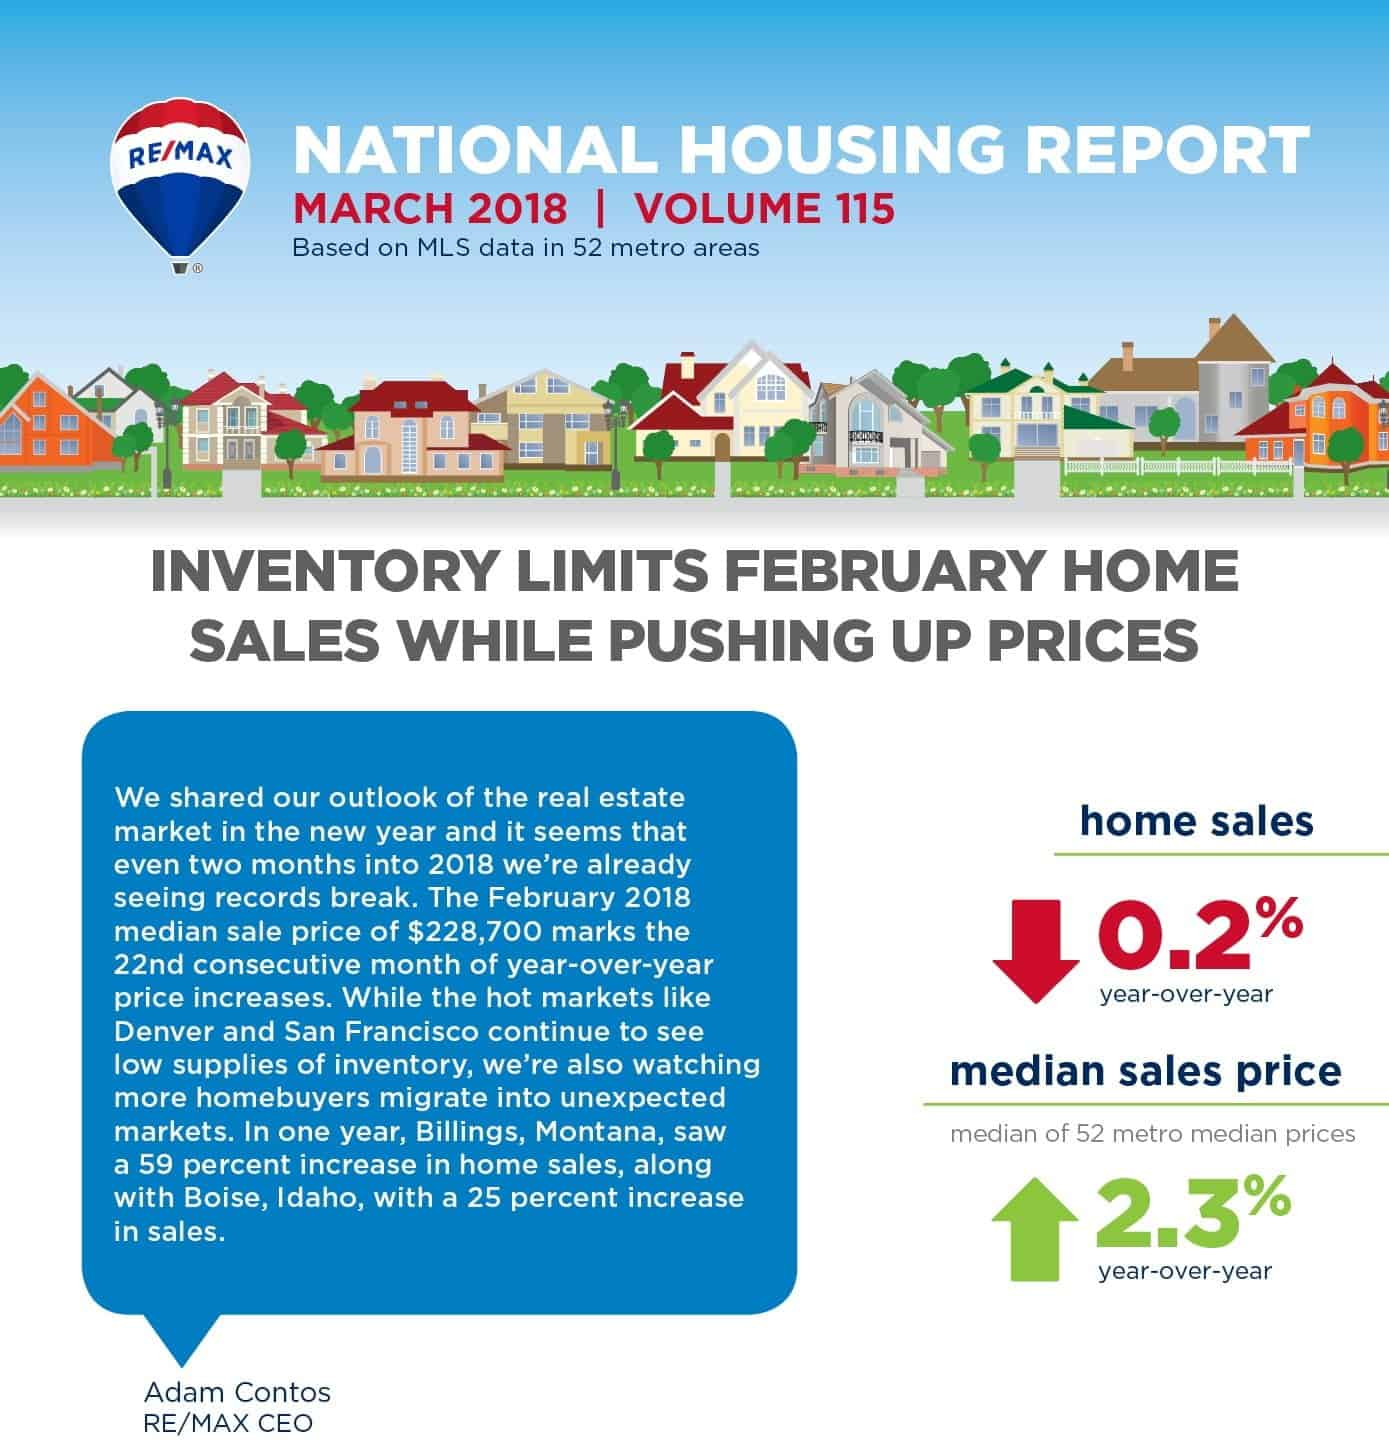 March 2018 RE/MAX National Housing Report